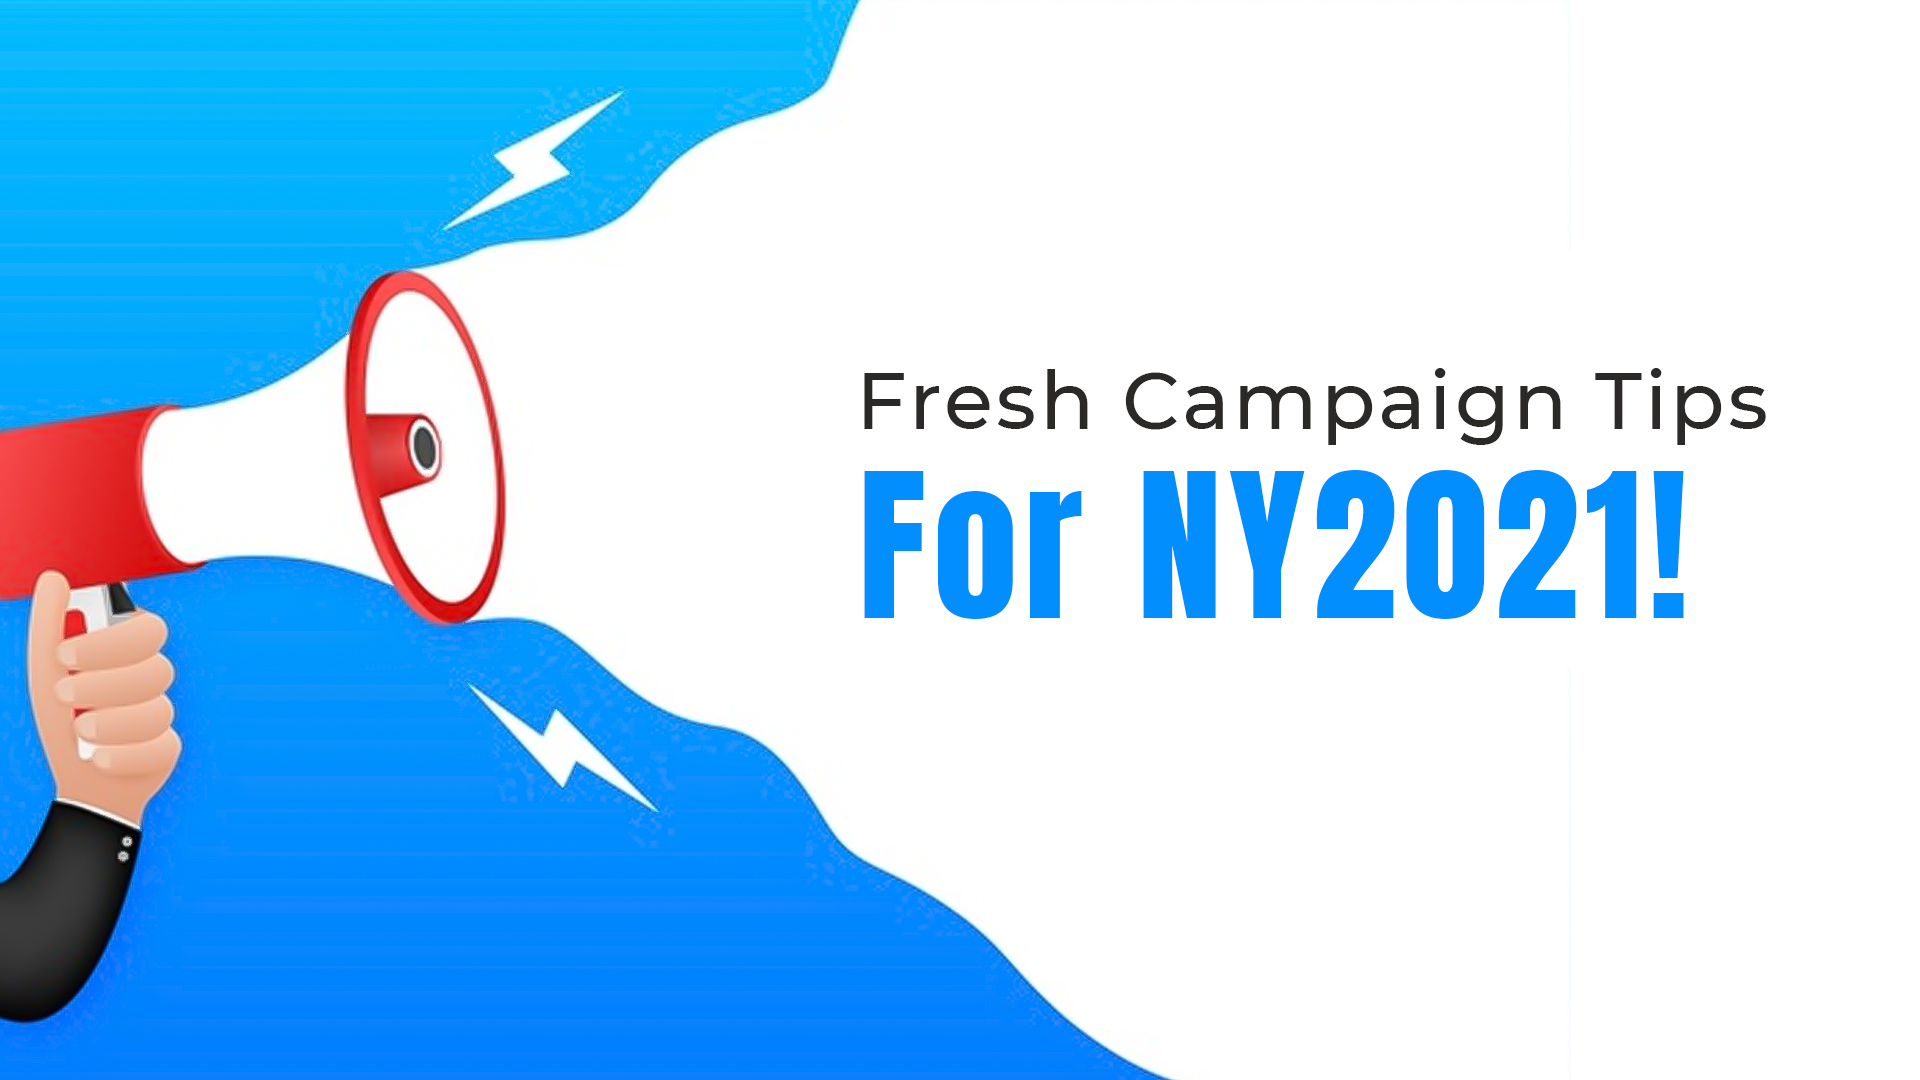 Fresh Campaign Tips For NY2021!